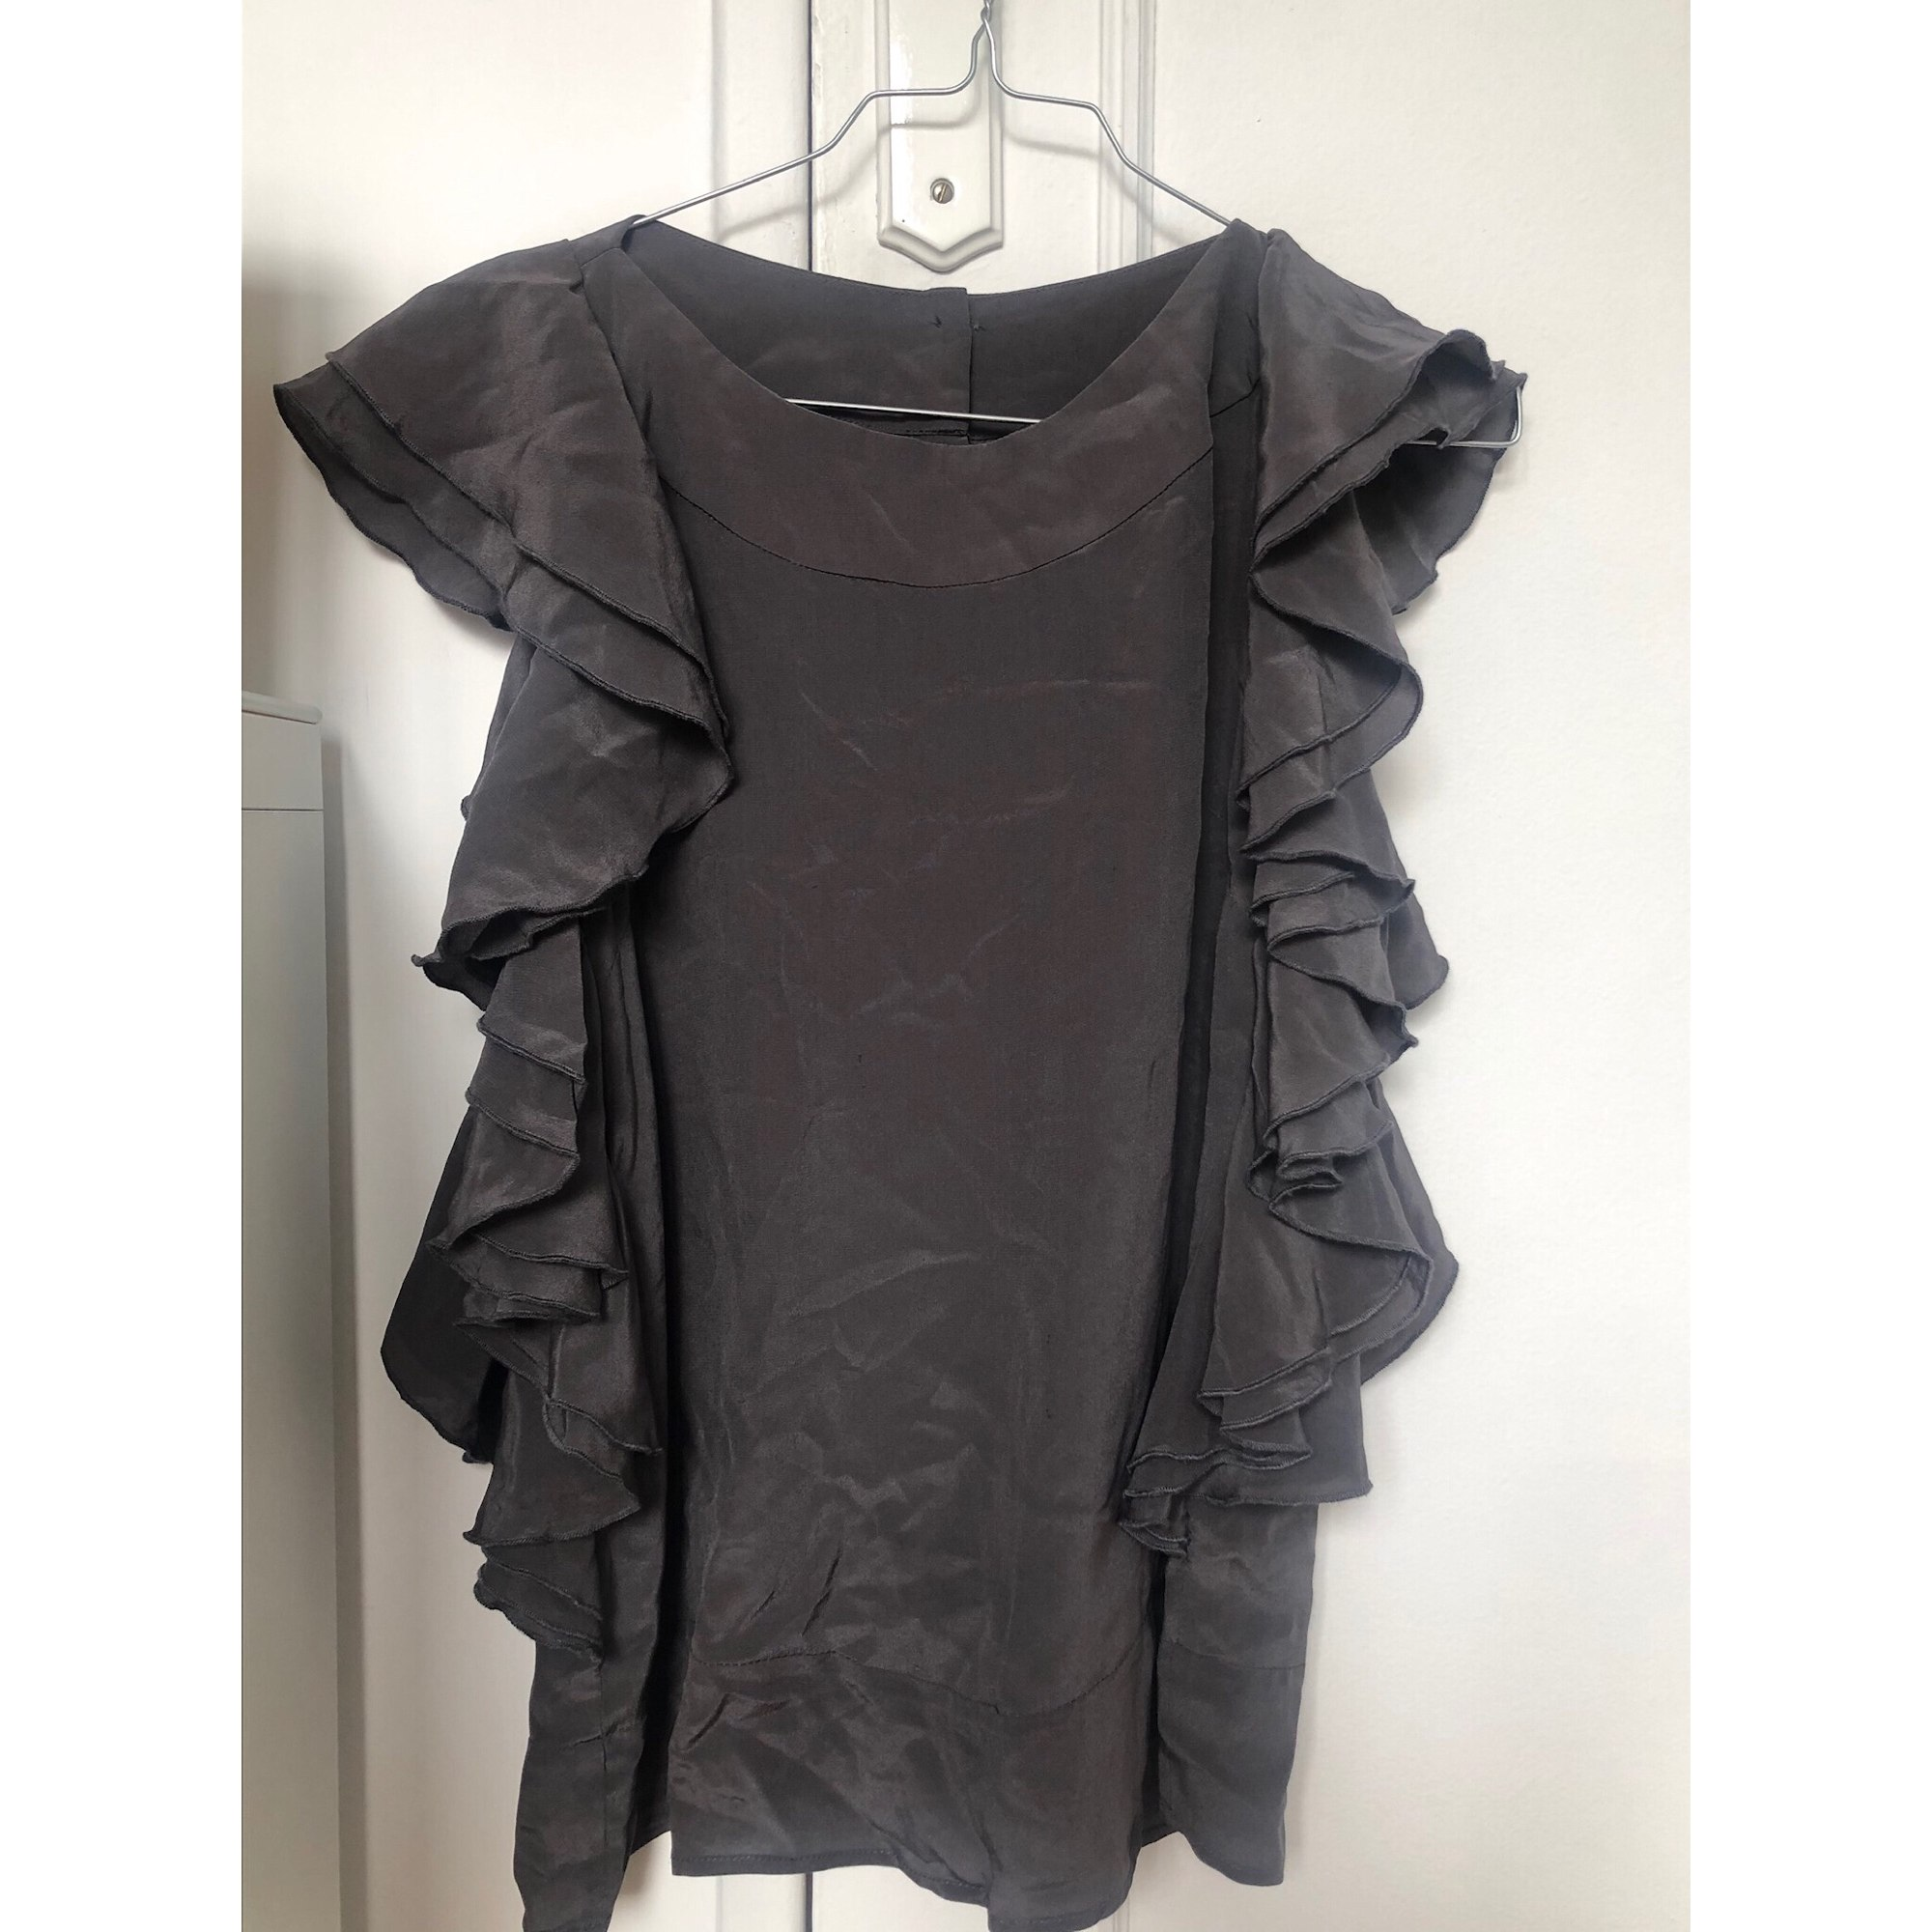 Blouse STELLA FOREST Gris, anthracite